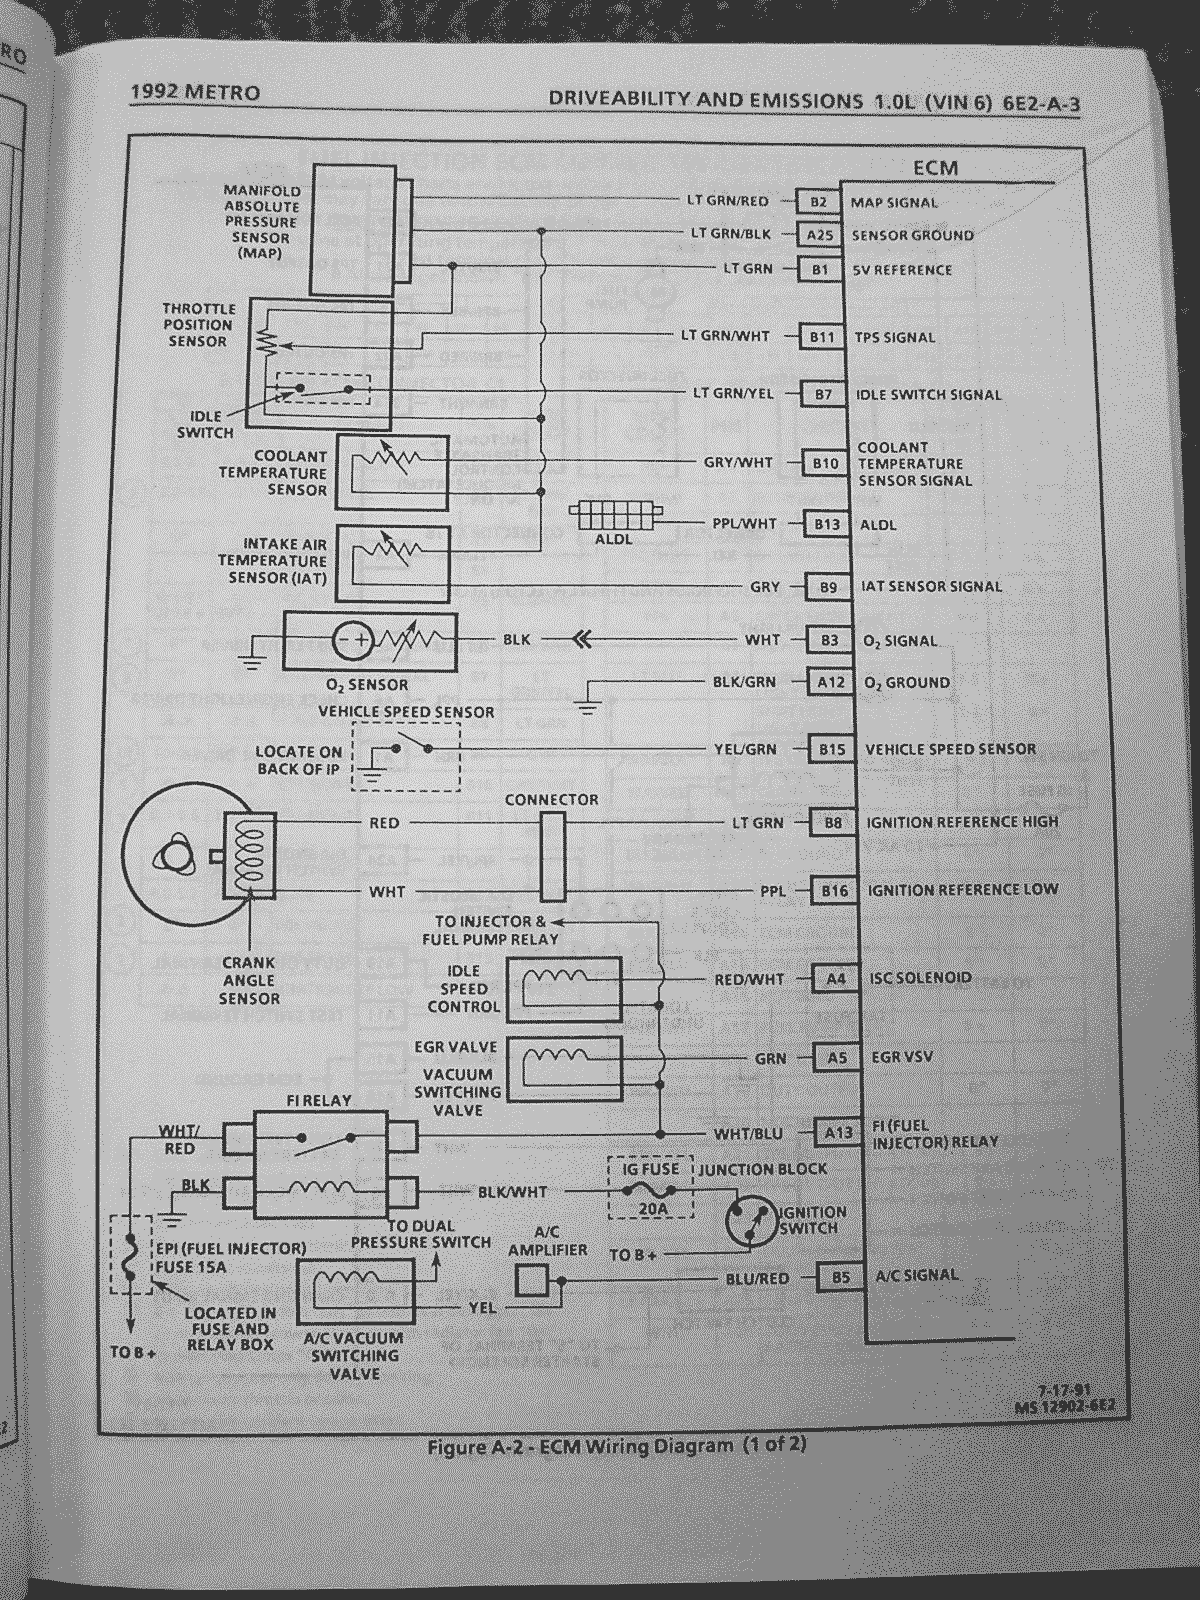 818587 Fuse Panel Diagram furthermore 98 Cronw Vic Temp Sensor in addition Geo9501 also Suzuki additionally 2000 Chevrolet Prizm Under The Dash Fuse Box Diagram. on geo metro ignition diagram